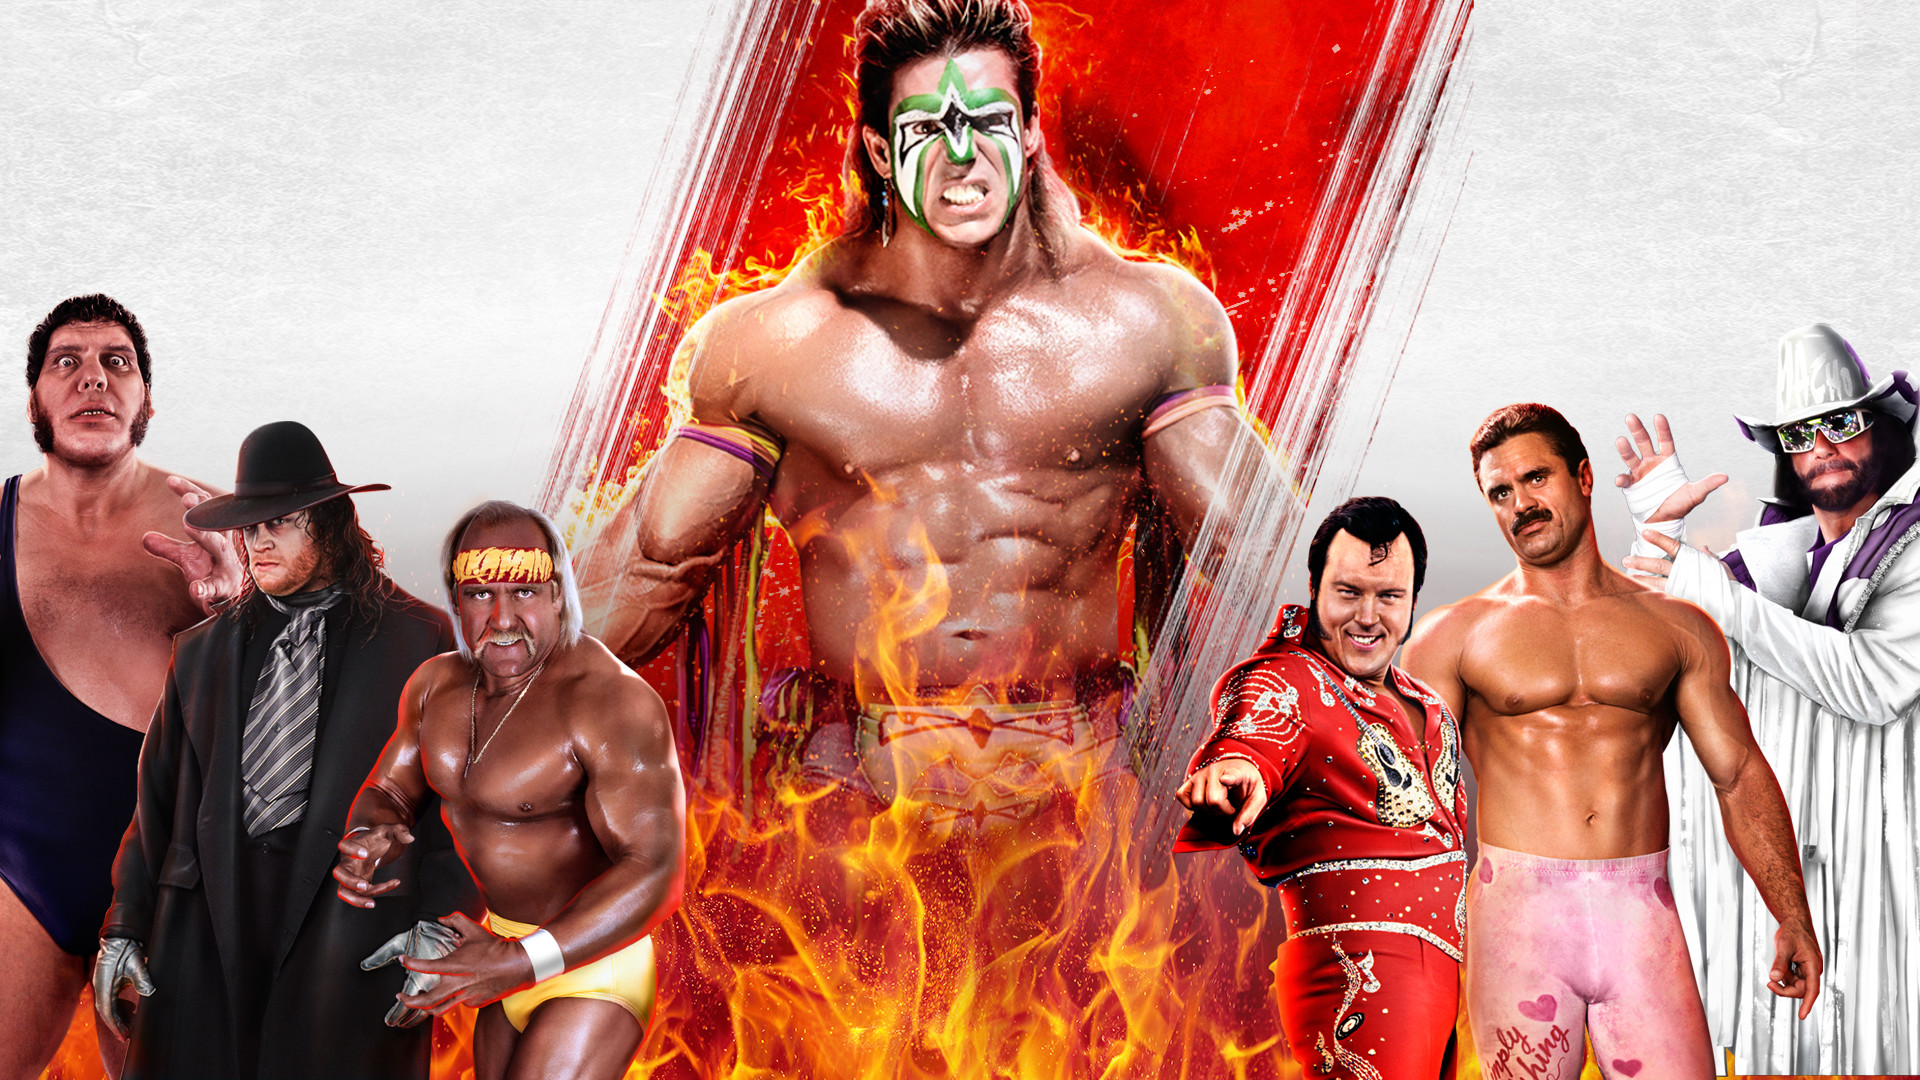 1920x1080 ... DLCHenry WWE2K15 Wallpaper DLCWarrior